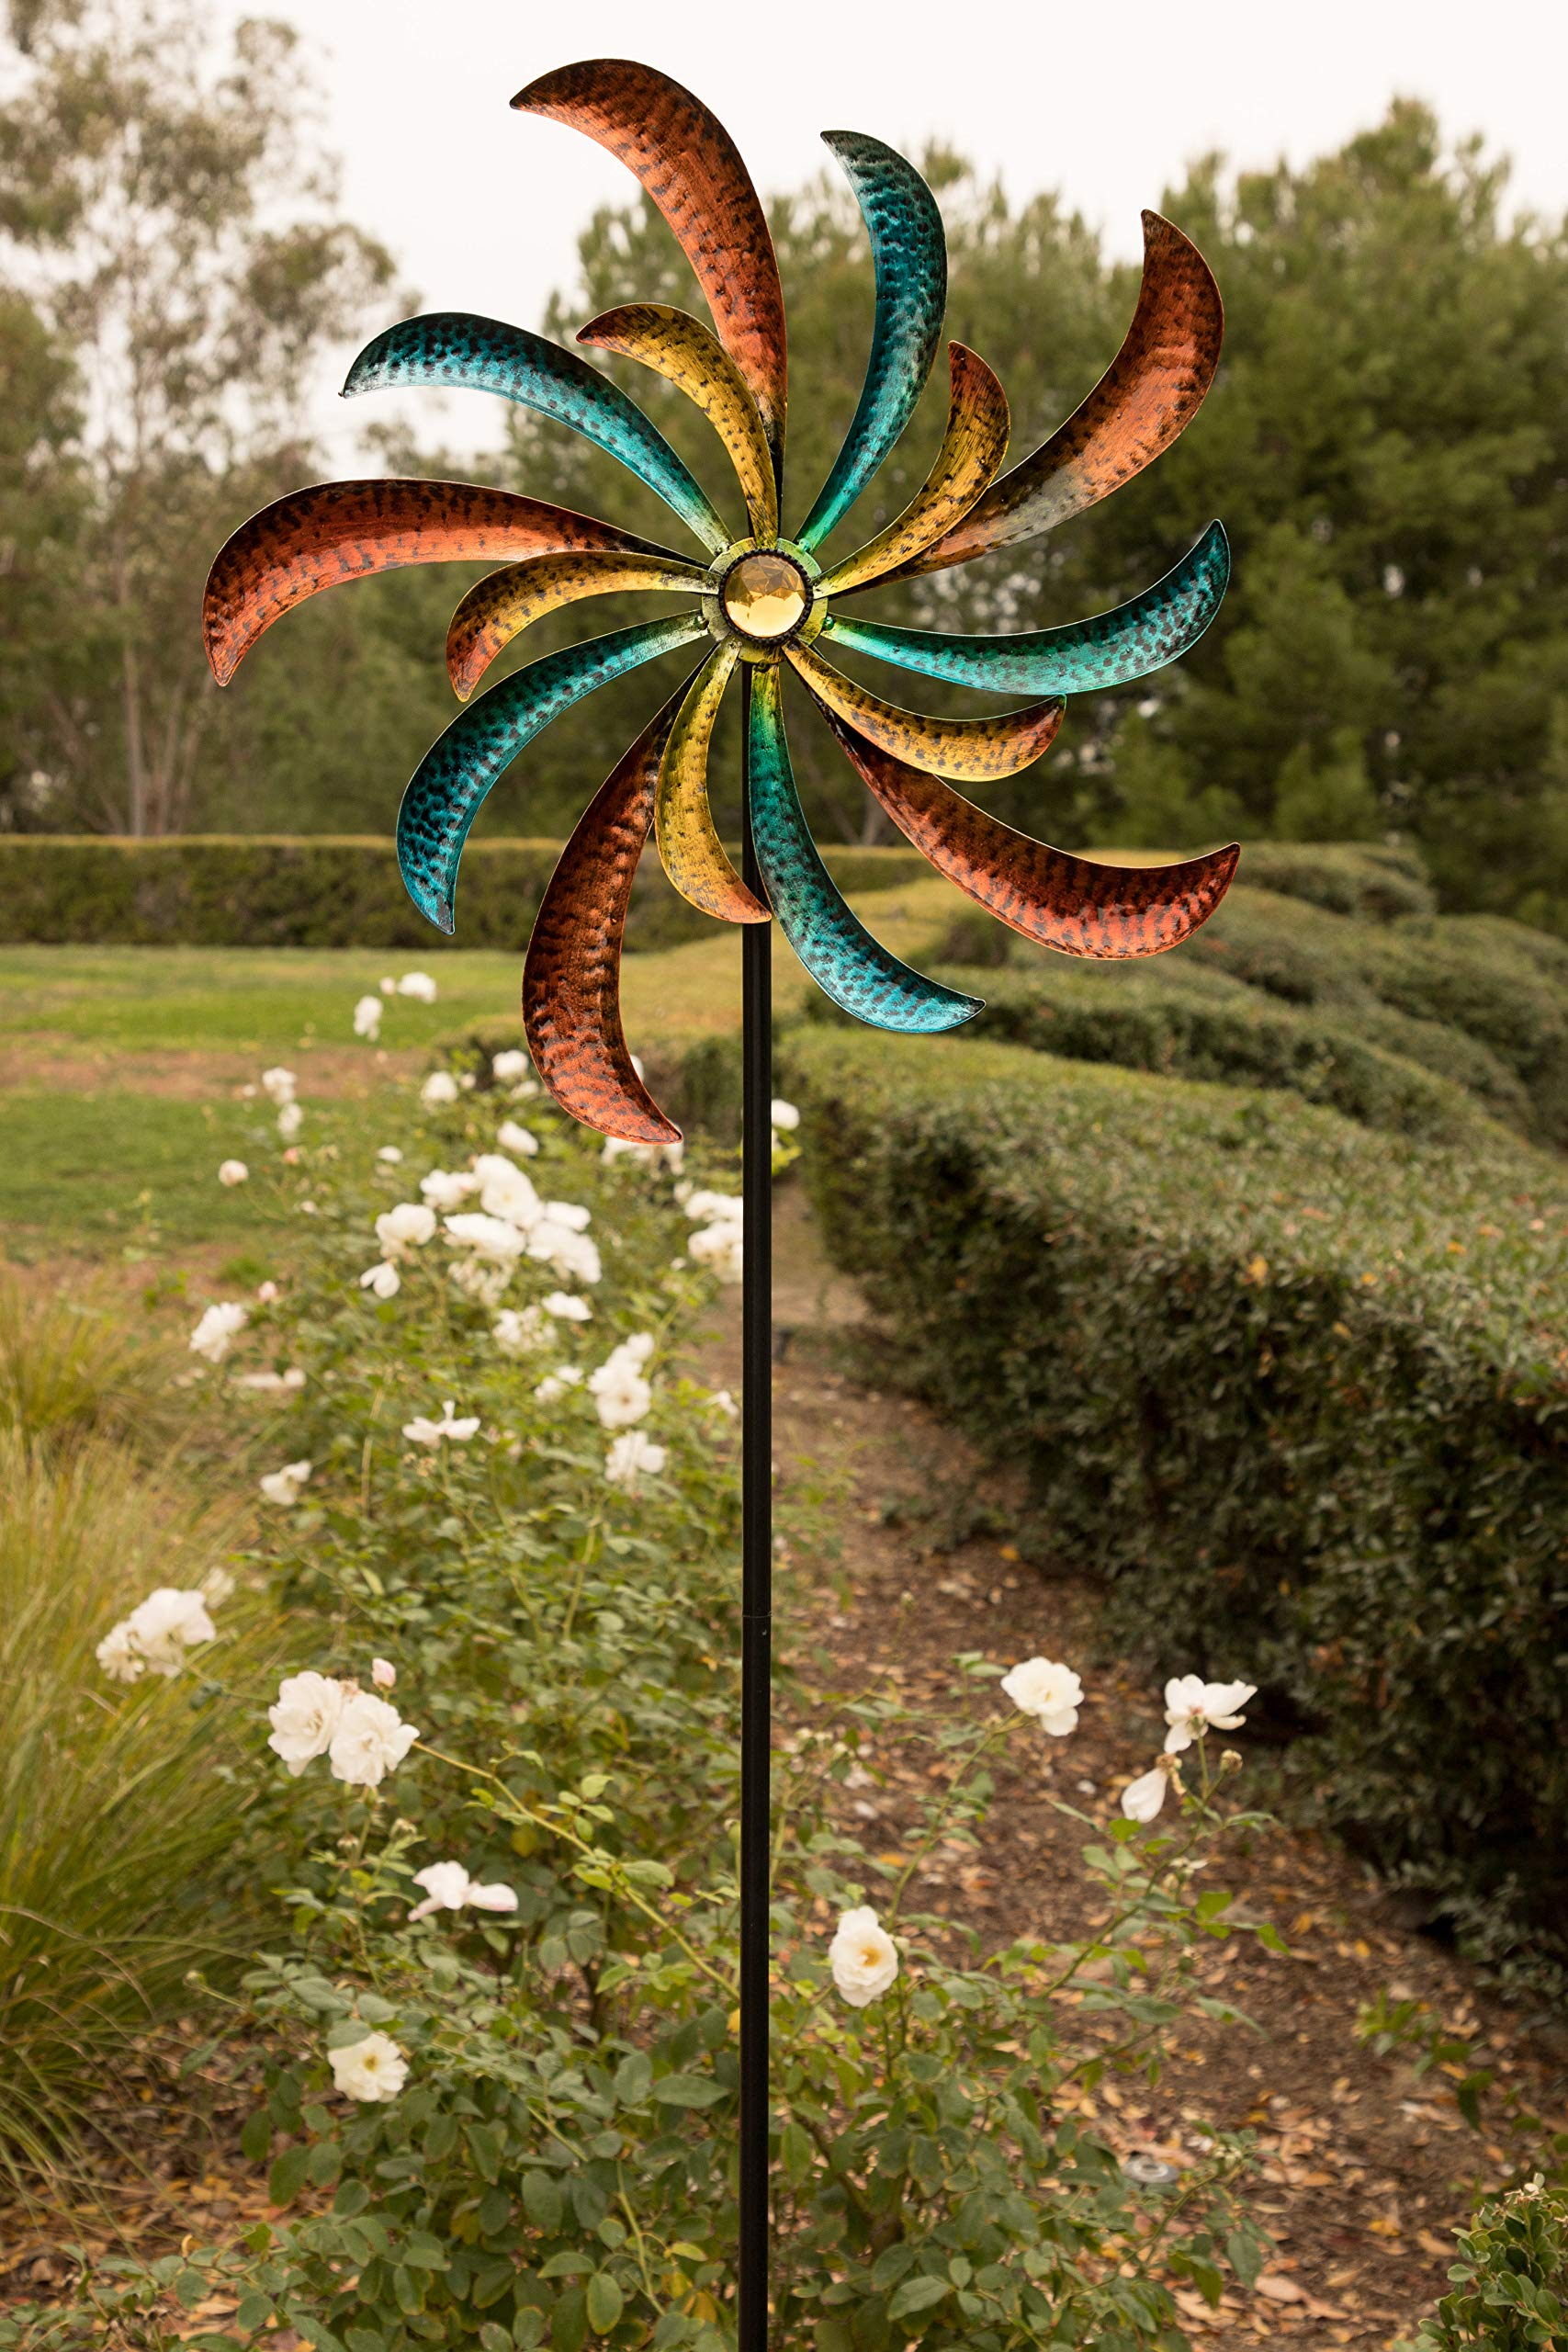 Alpine SLL1874 Colorful Swirl Kinetic Wind Spinner Garden Stake, 64 Inch Tall Multi